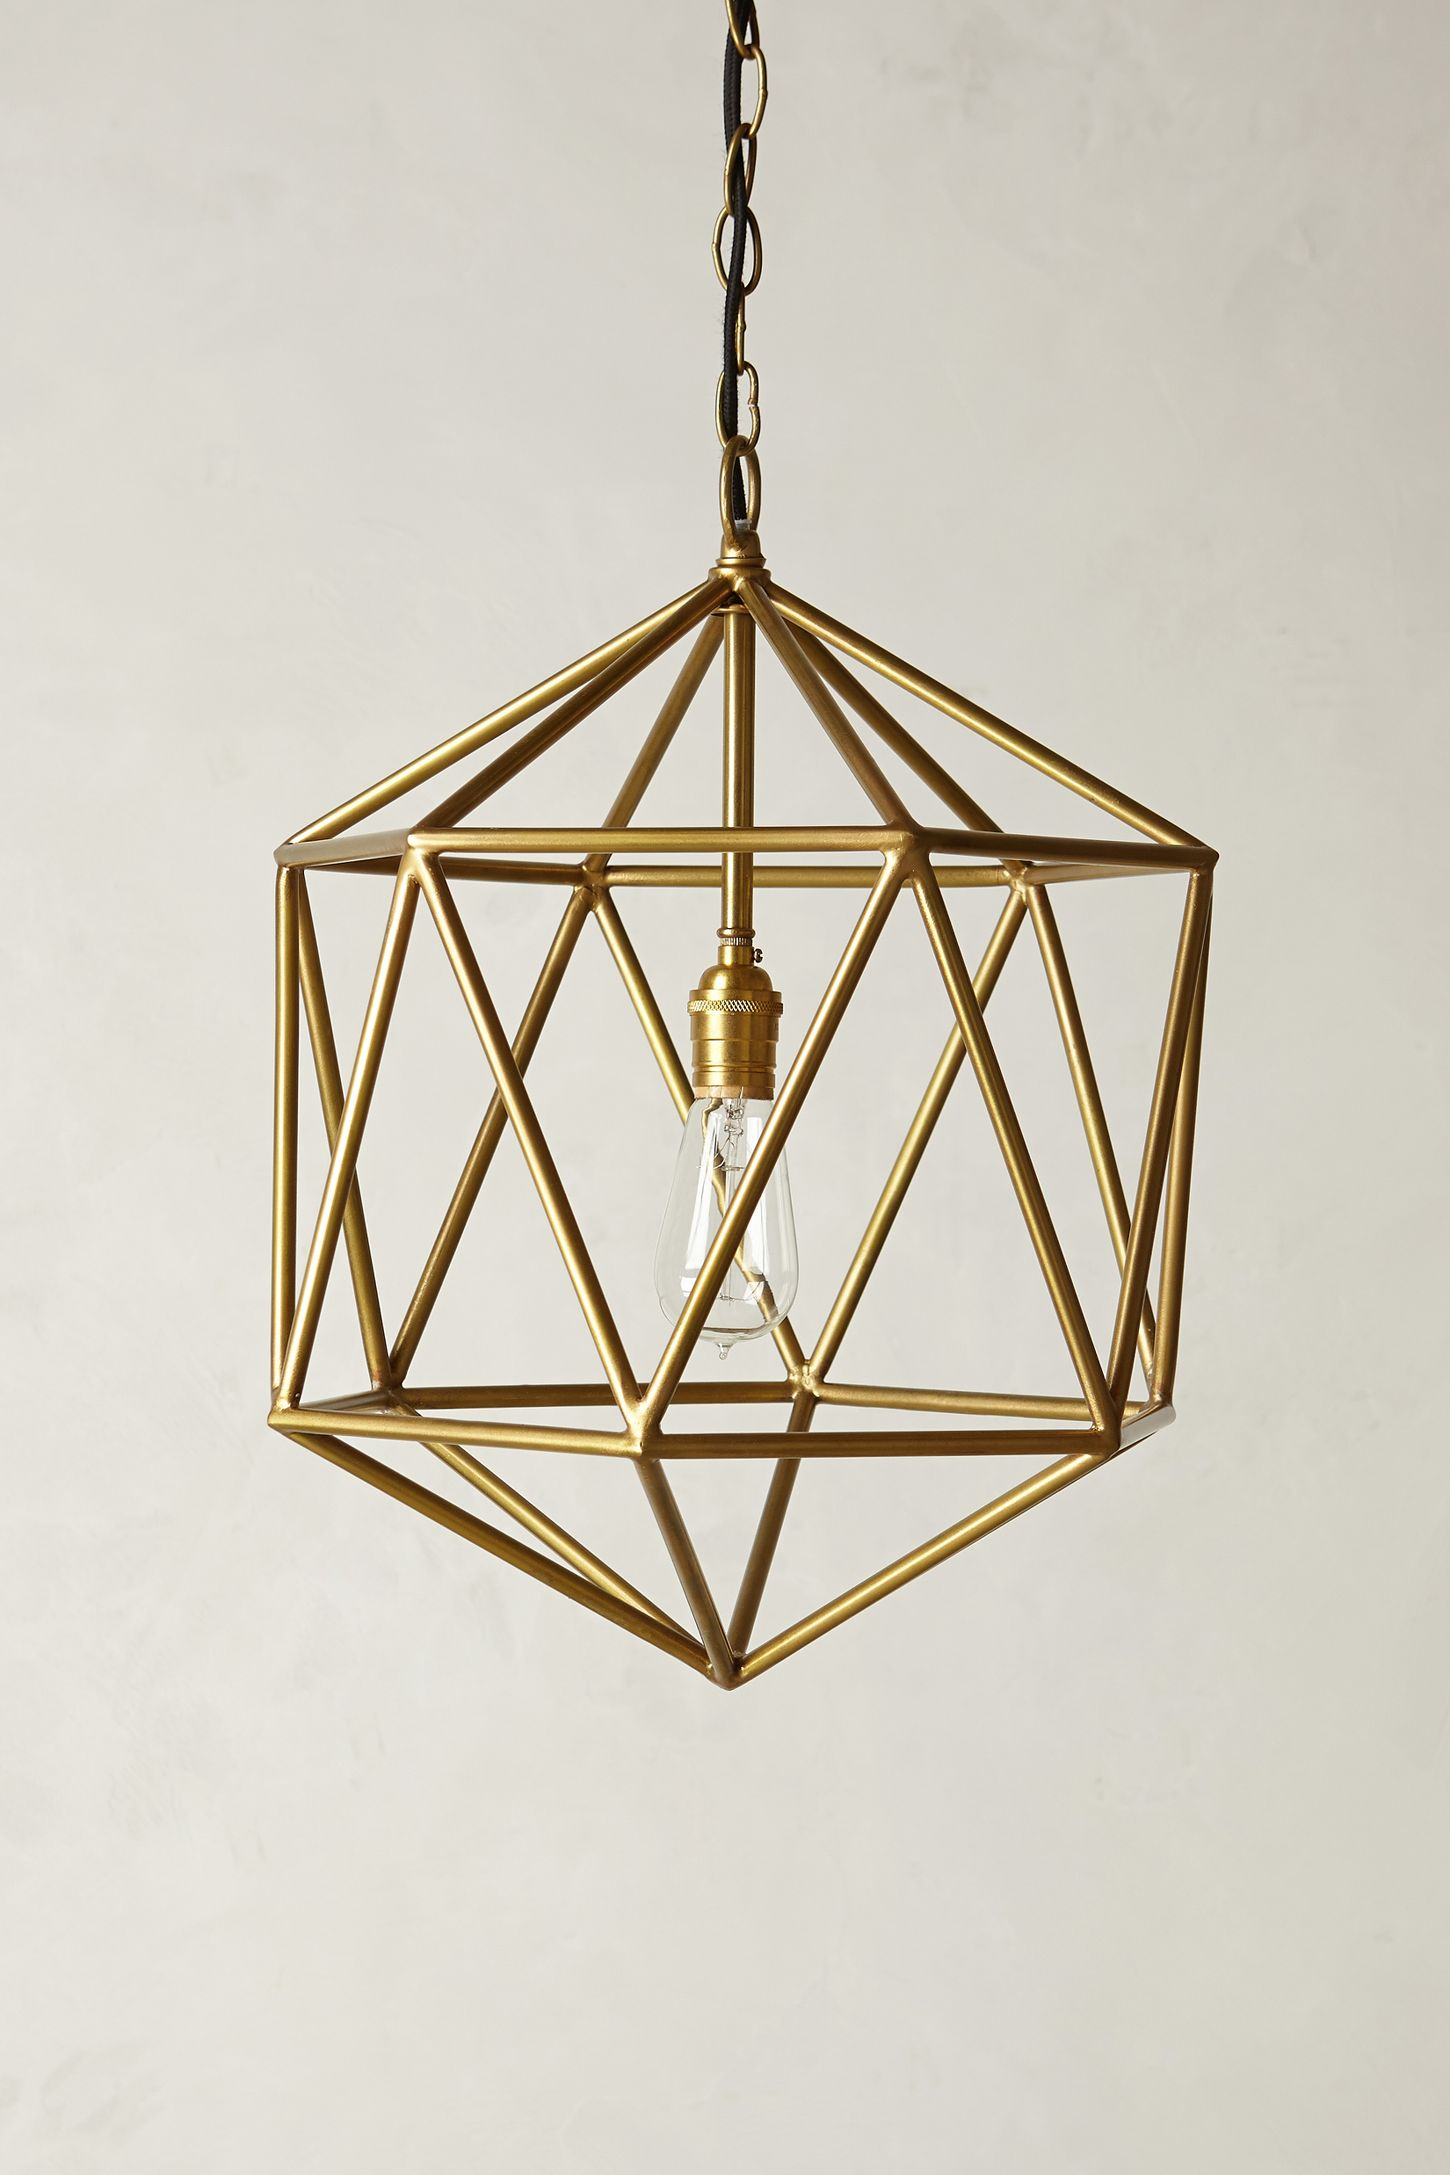 Euclidean pendant faceted orb anthropologie aloadofball